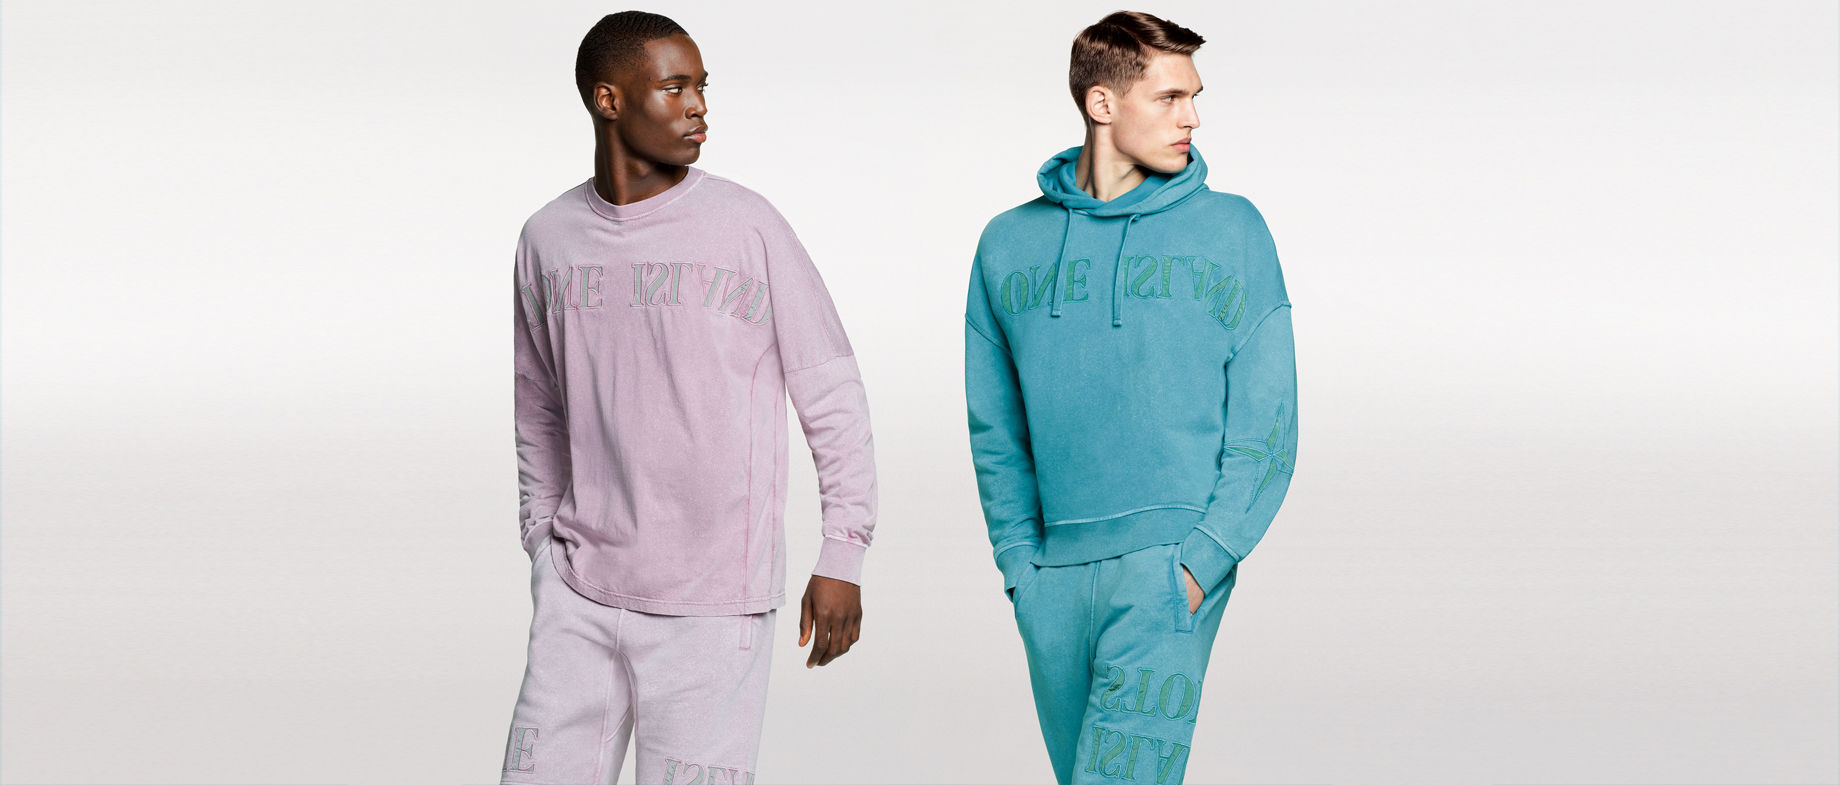 Two models, one wearing a pink crewneck sweatshirt and matching sweatpants, the other one wearing a light blue hooded sweatshirt with matching sweatpants, both with mirrored Stone Island embroidery across the chest and on the thighs.